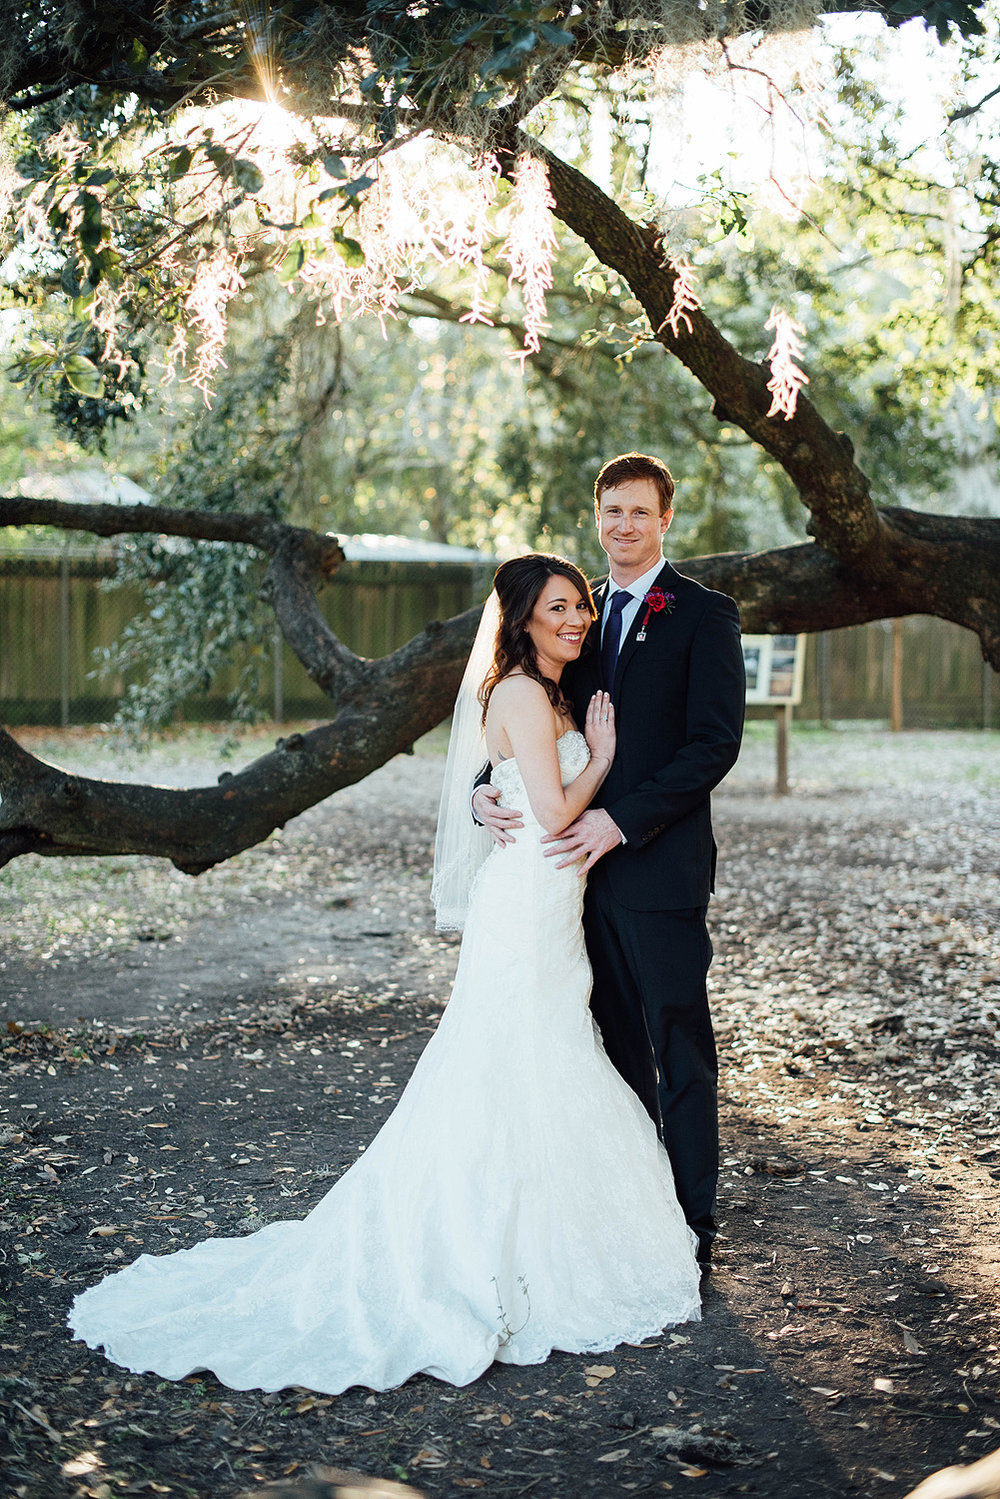 Lisa + Rock-Tree-of-Life-Audubon-Park-New-Orleans-Elopement-Photos_Online_0040.jpg